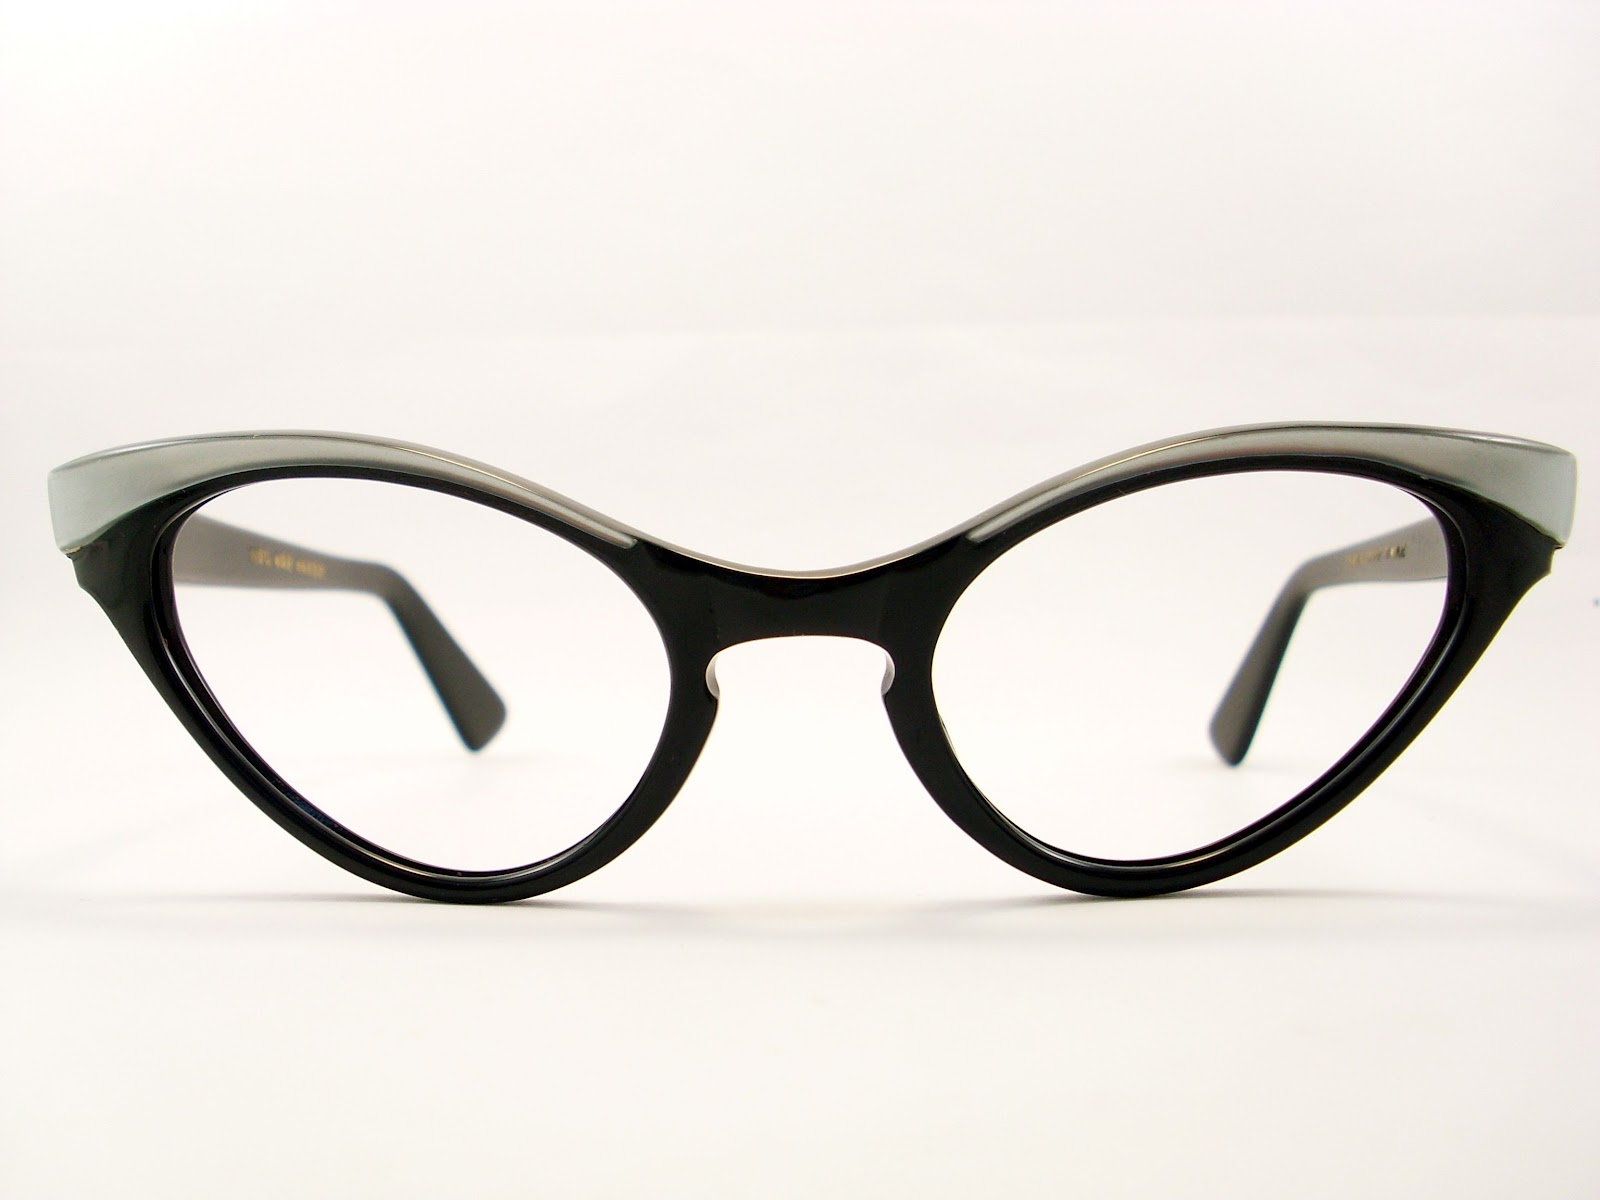 sunglasses 50s vintage cat eye glasses eyeglasses sunglasses frame